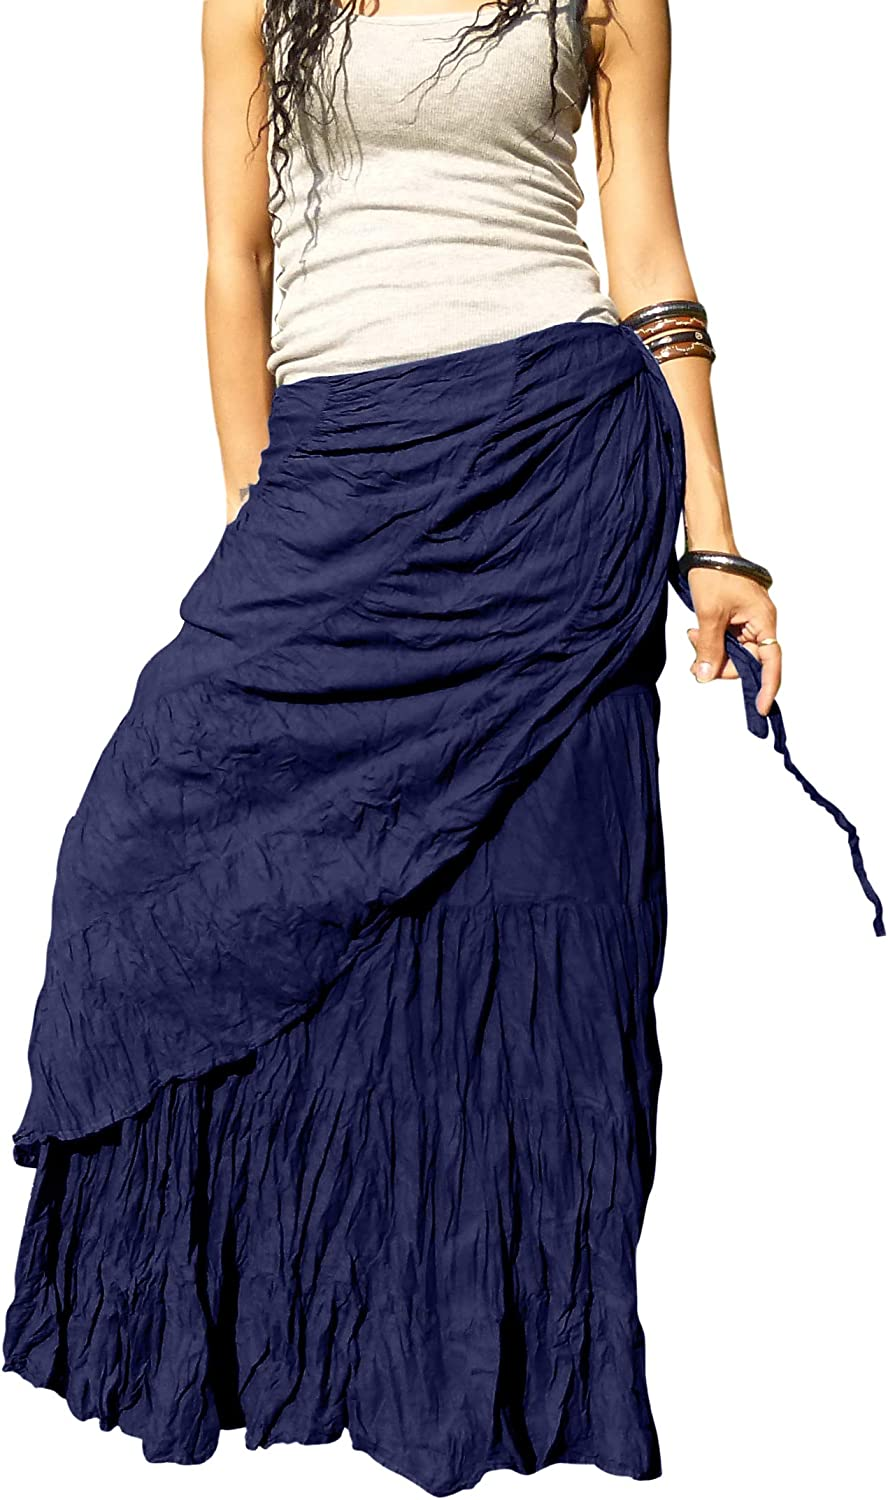 Billy's Thai Shop Long Wrap Skirts for Women - Elegant Stitched and Solid Colored Handmade Flamenco Skirt